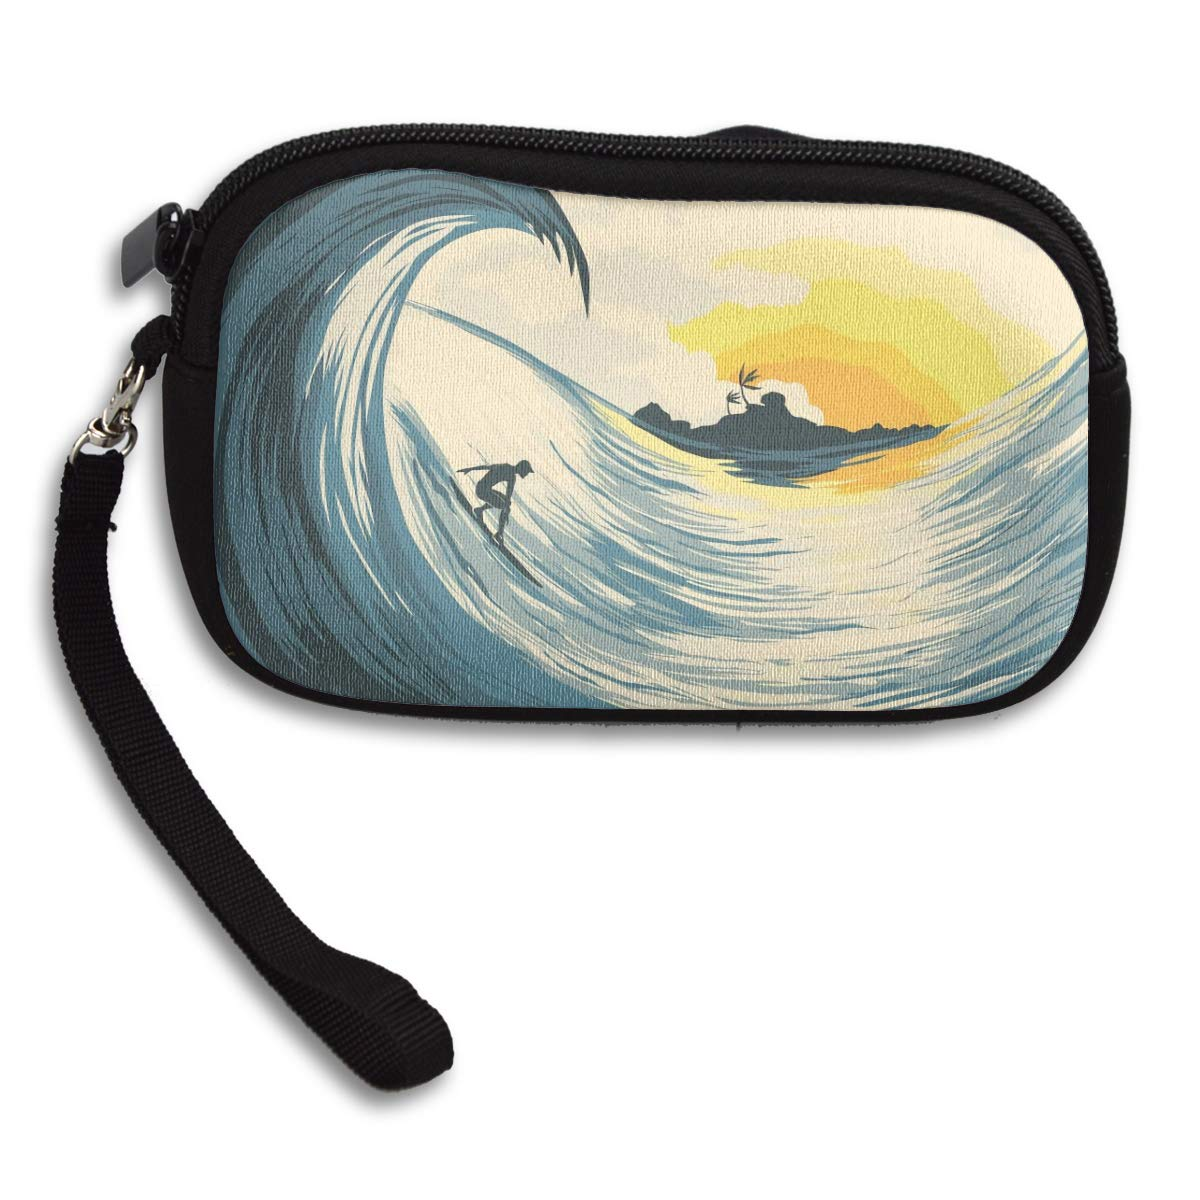 Coin Purse Island Wave And Surfer At Sunset Coin Pouch With Zipper,Make Up Bag,Wallet Bag Change Pouch Key Holder